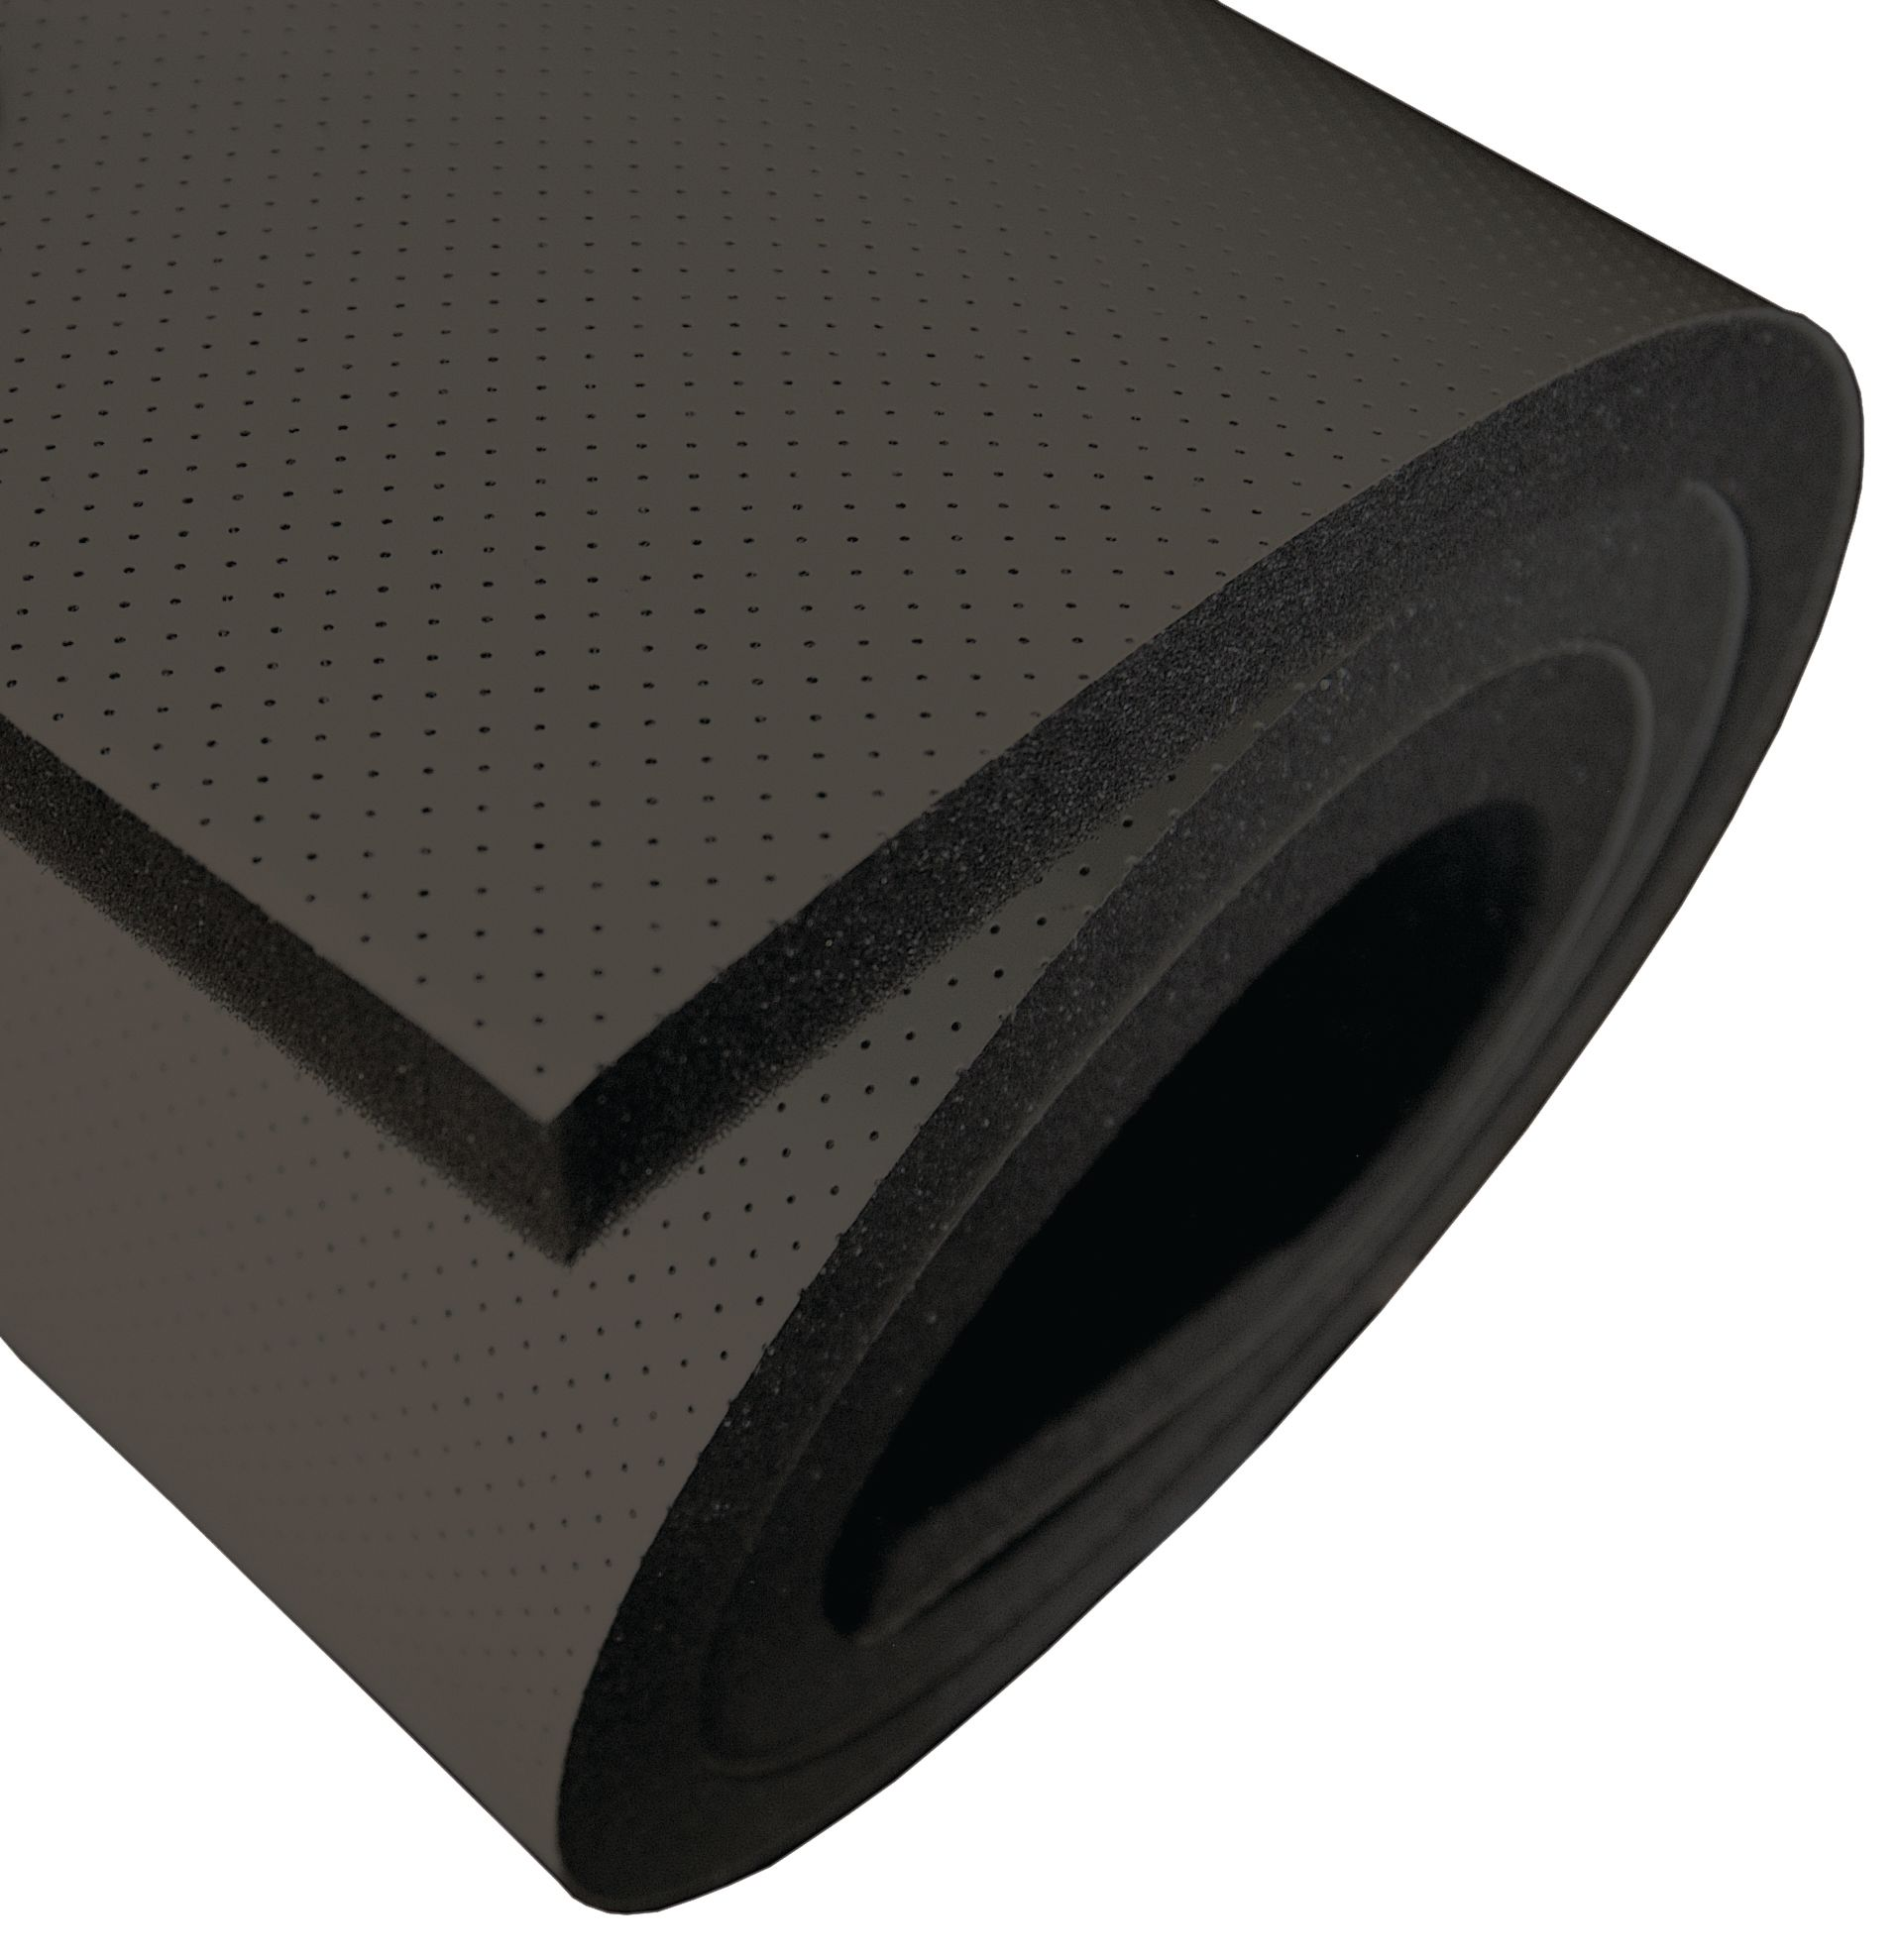 COUNTY INTERIOR TRIM-DARK GREY 101565